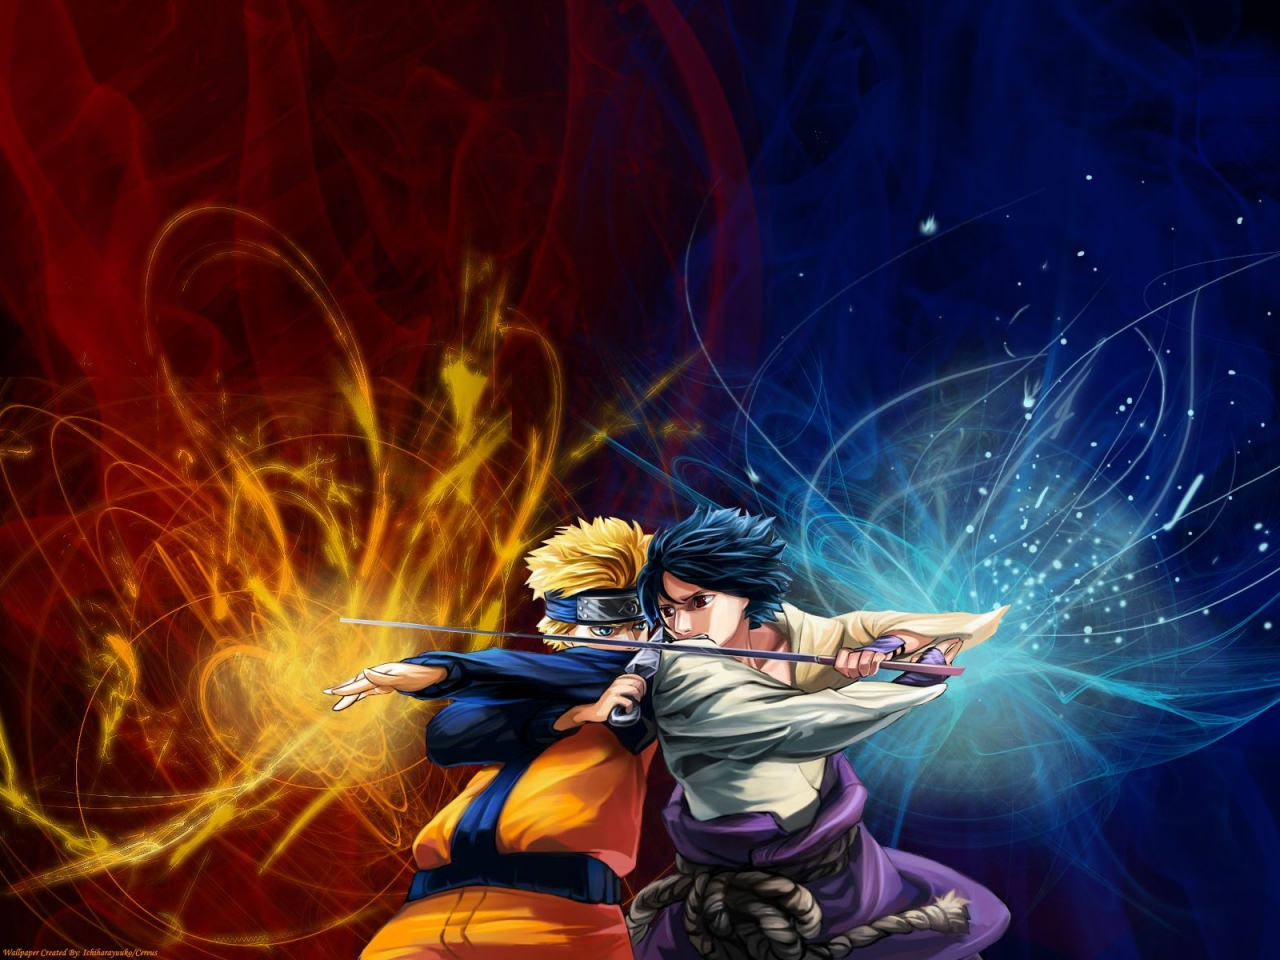 naruto vs sasuke shippuden wallpaper